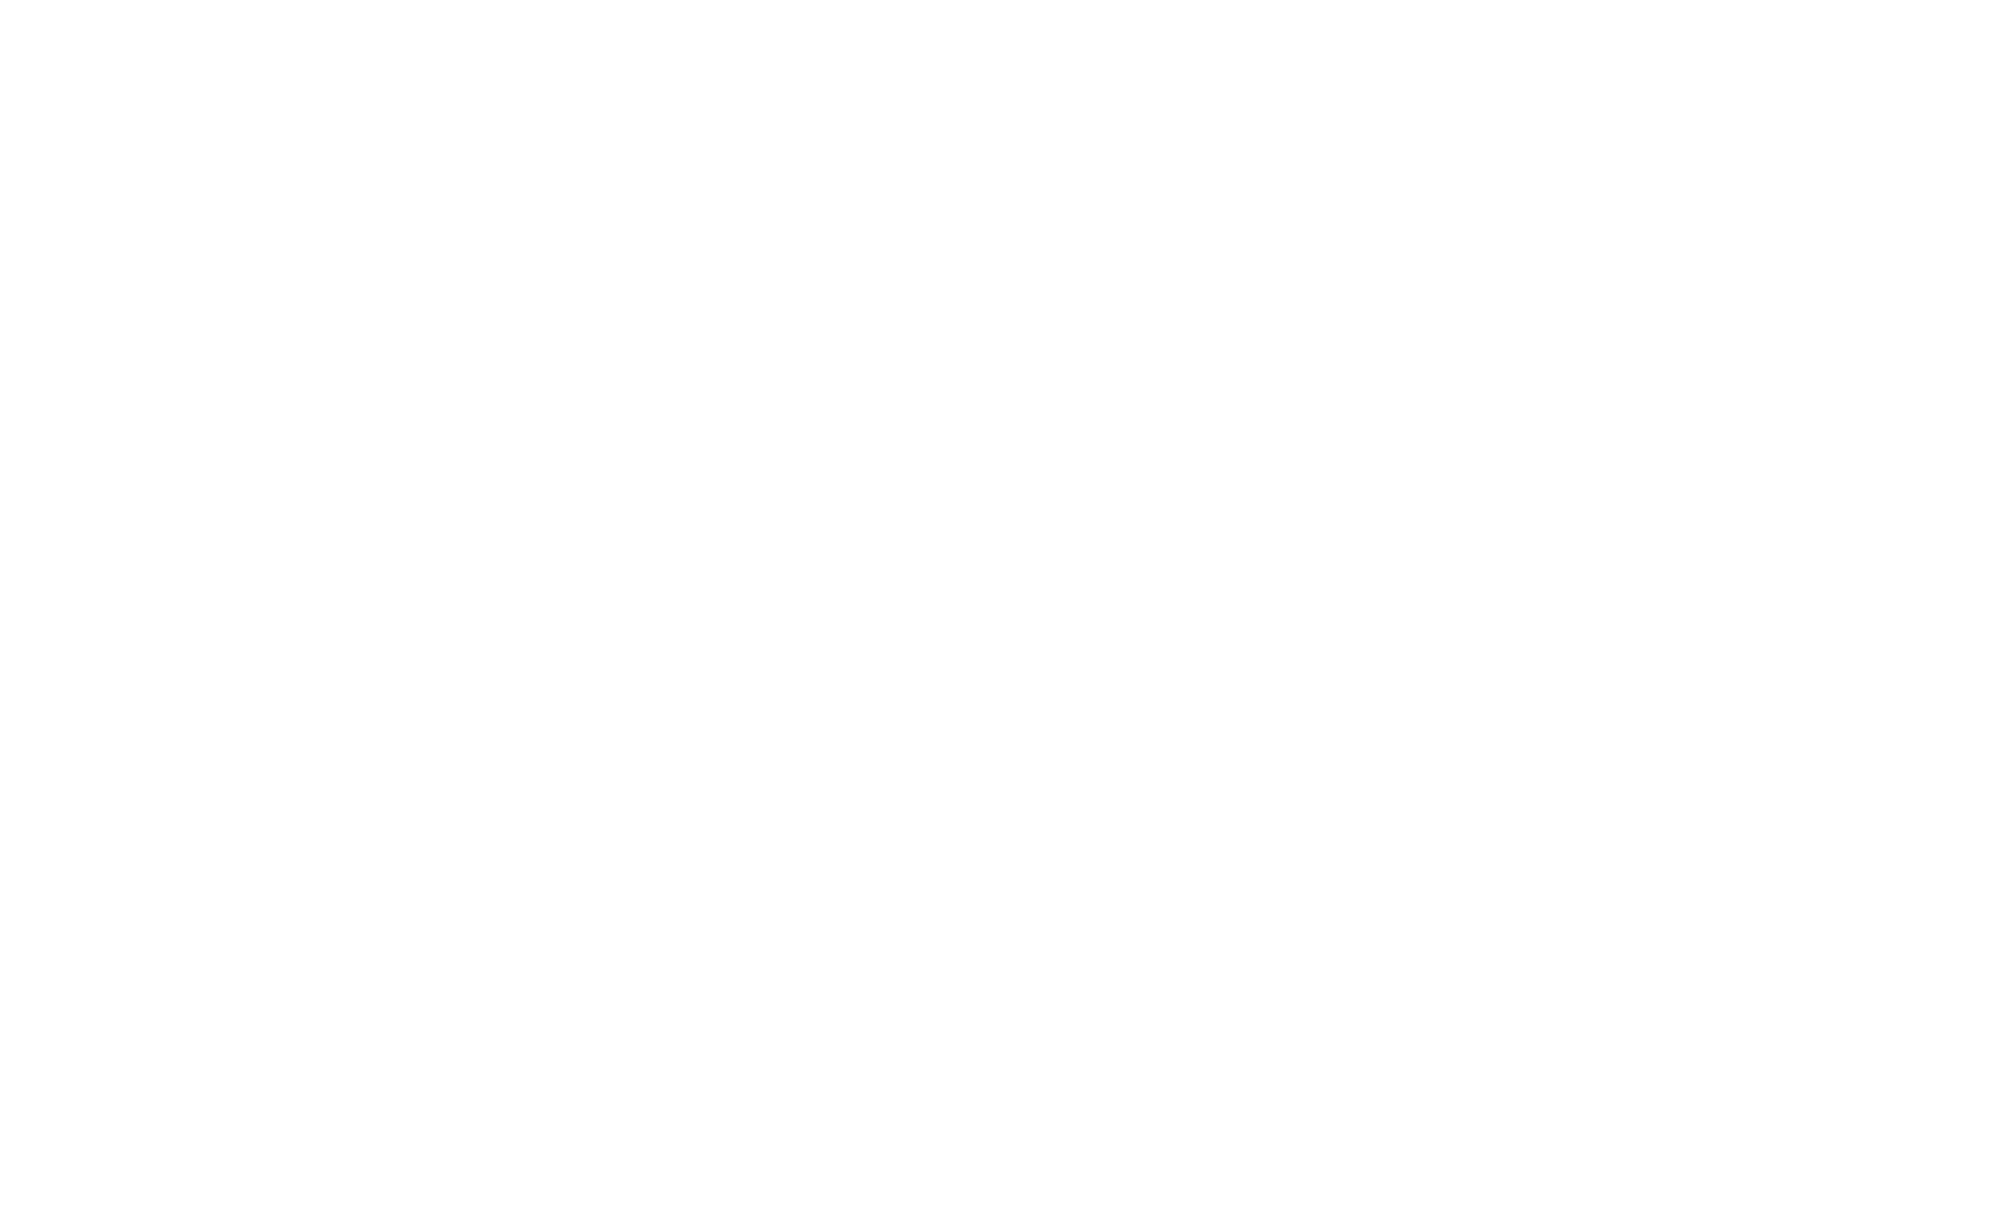 T.N.T. Photography